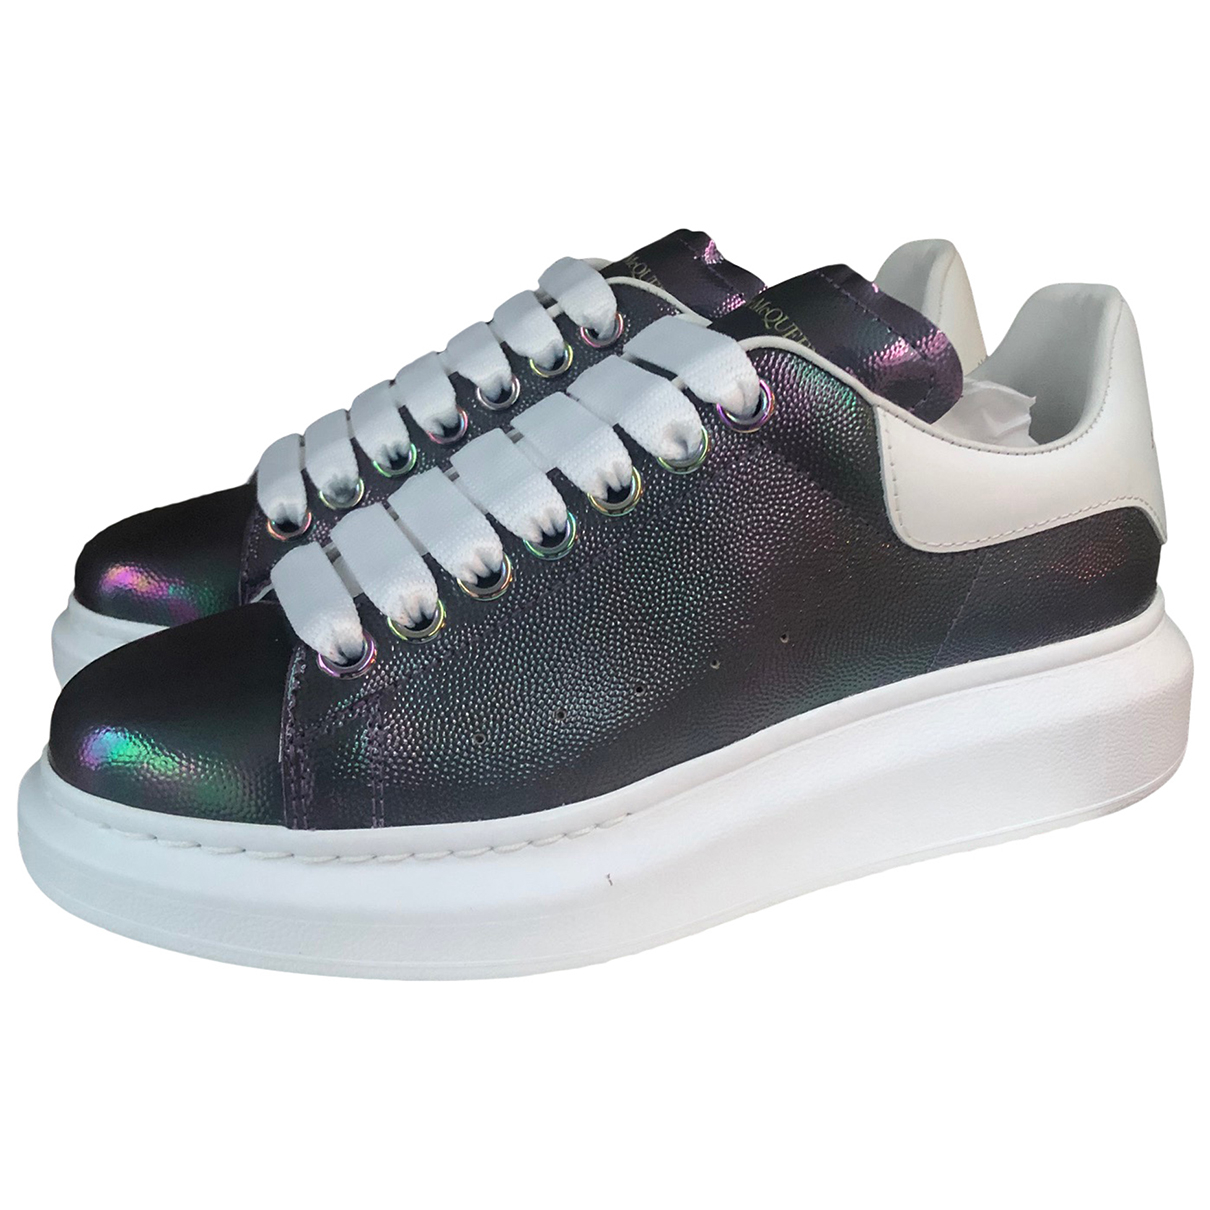 Alexander Mcqueen Oversize Metallic Leather Trainers for Women 36.5 EU